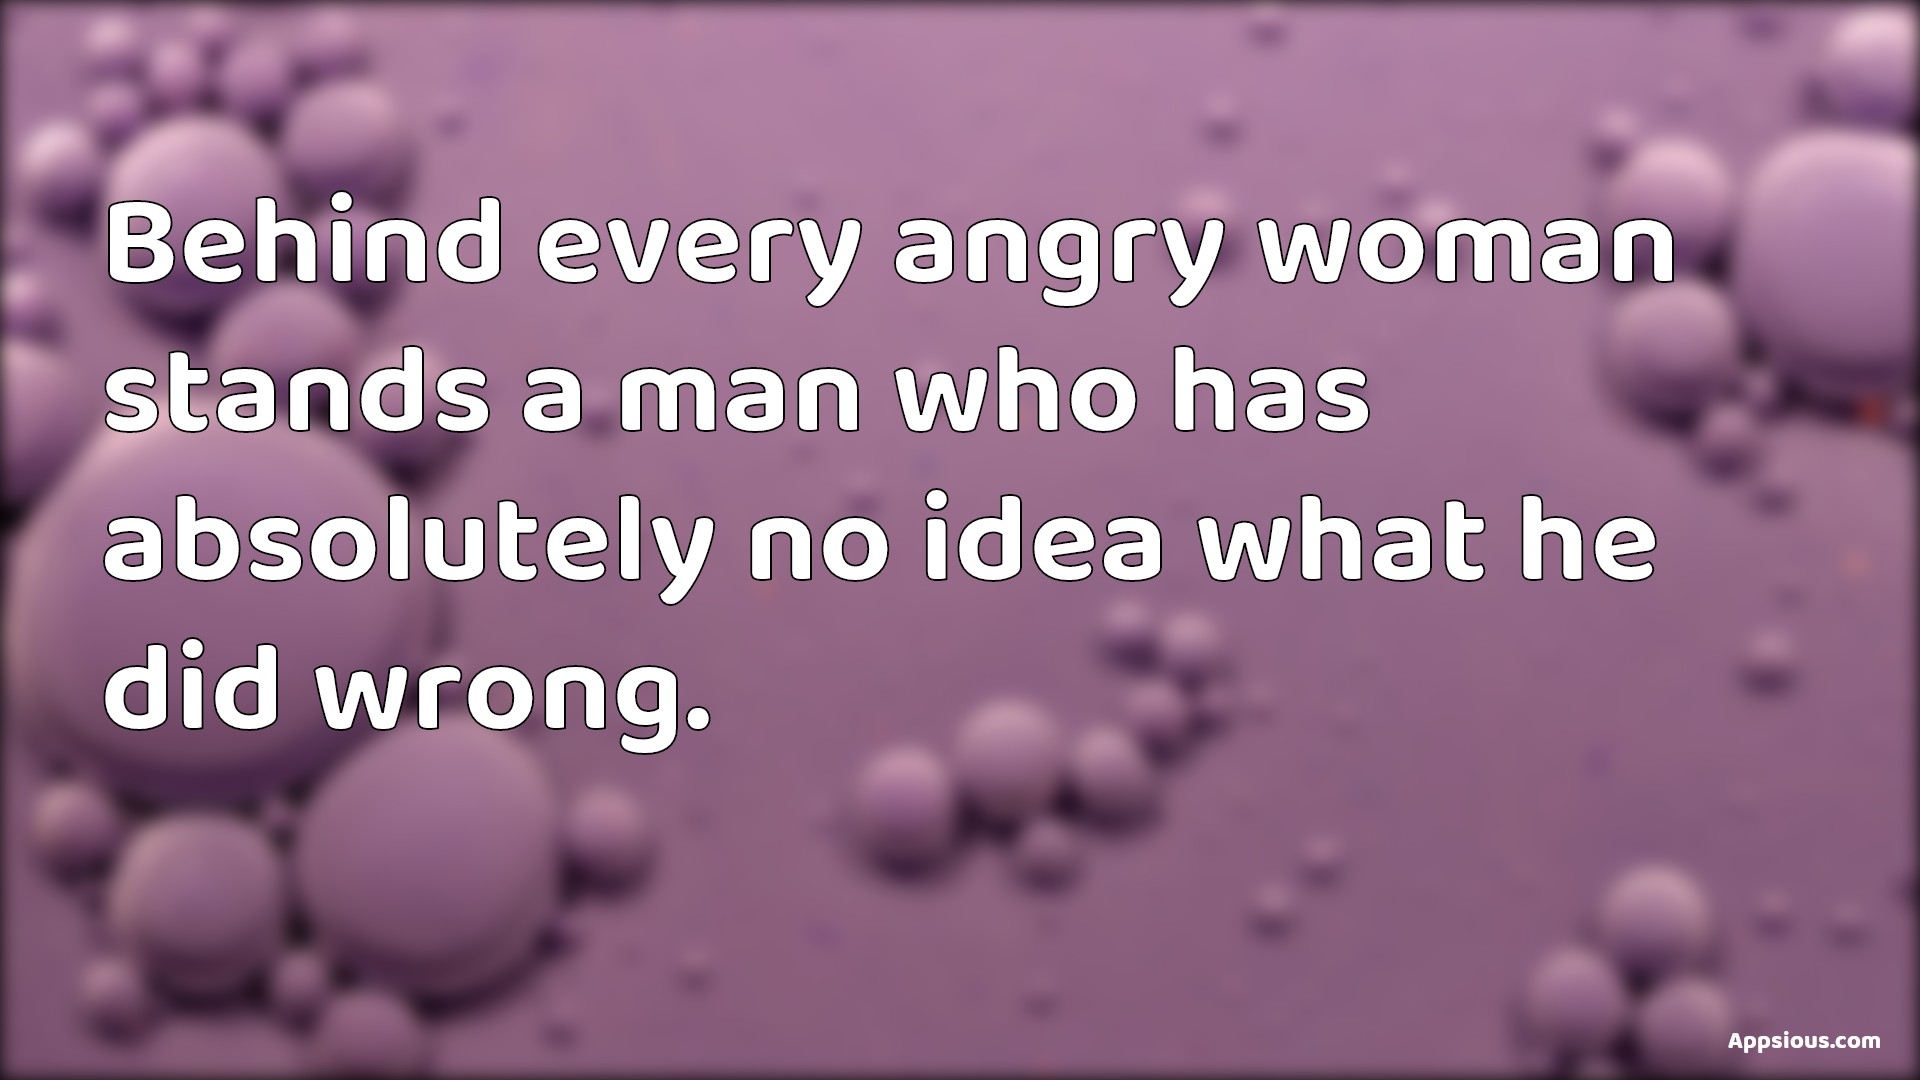 Behind every angry woman stands a man who has absolutely no idea what he did wrong.